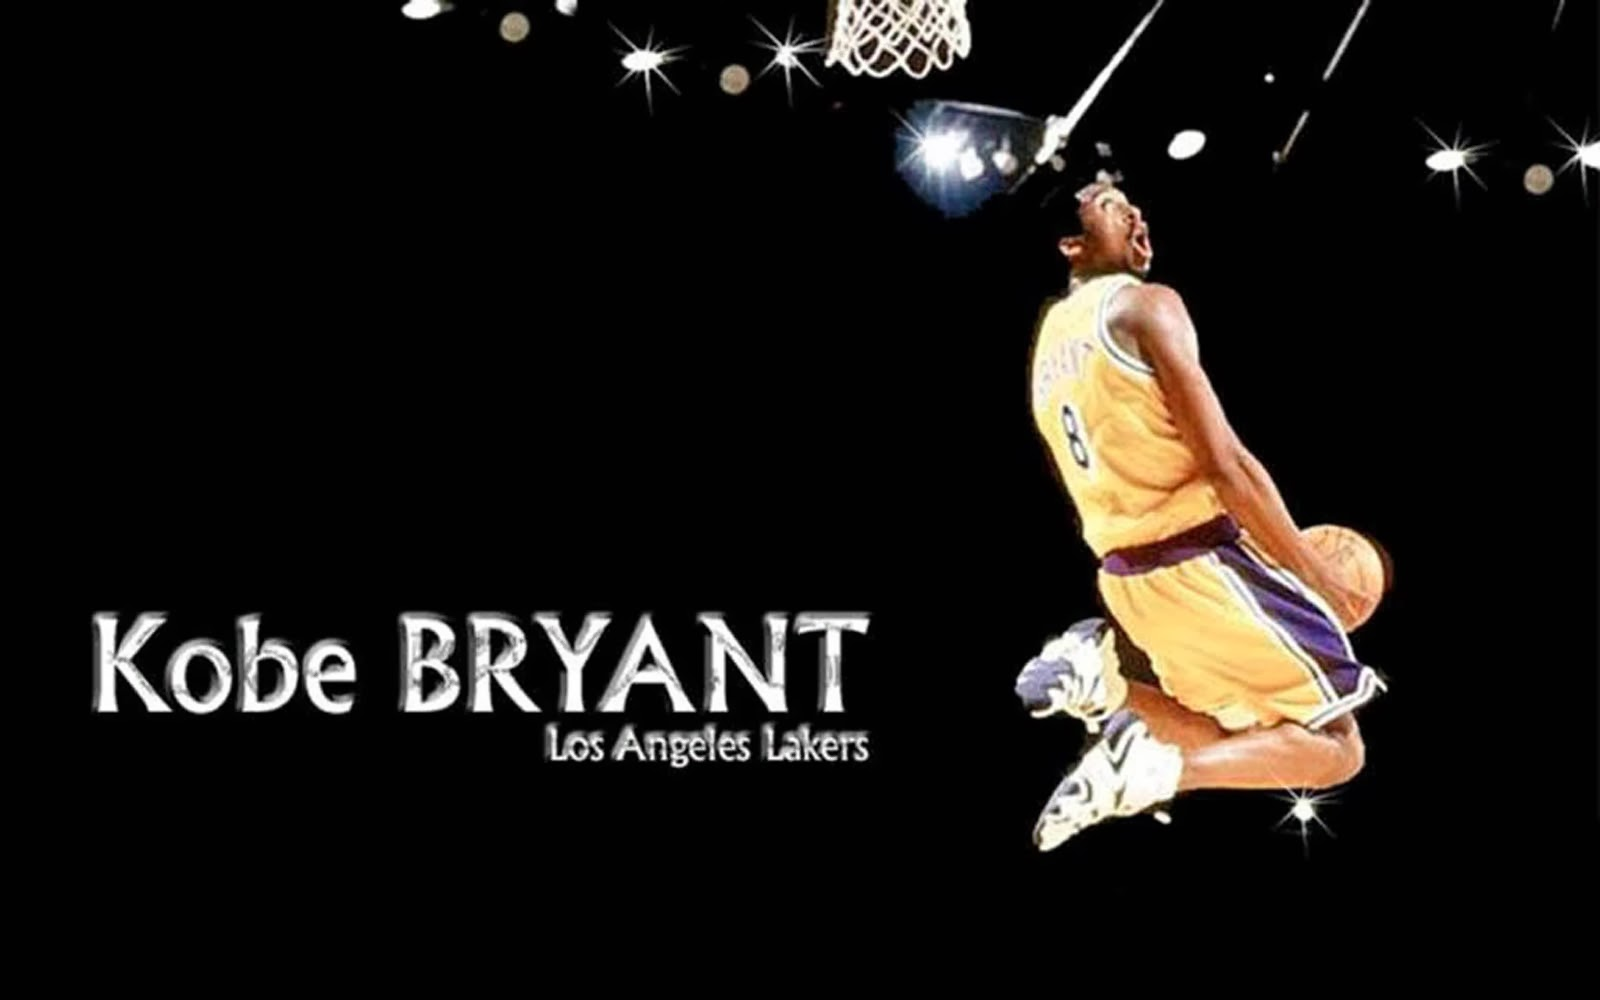 kobe bryant nice wallpapers - photo #21